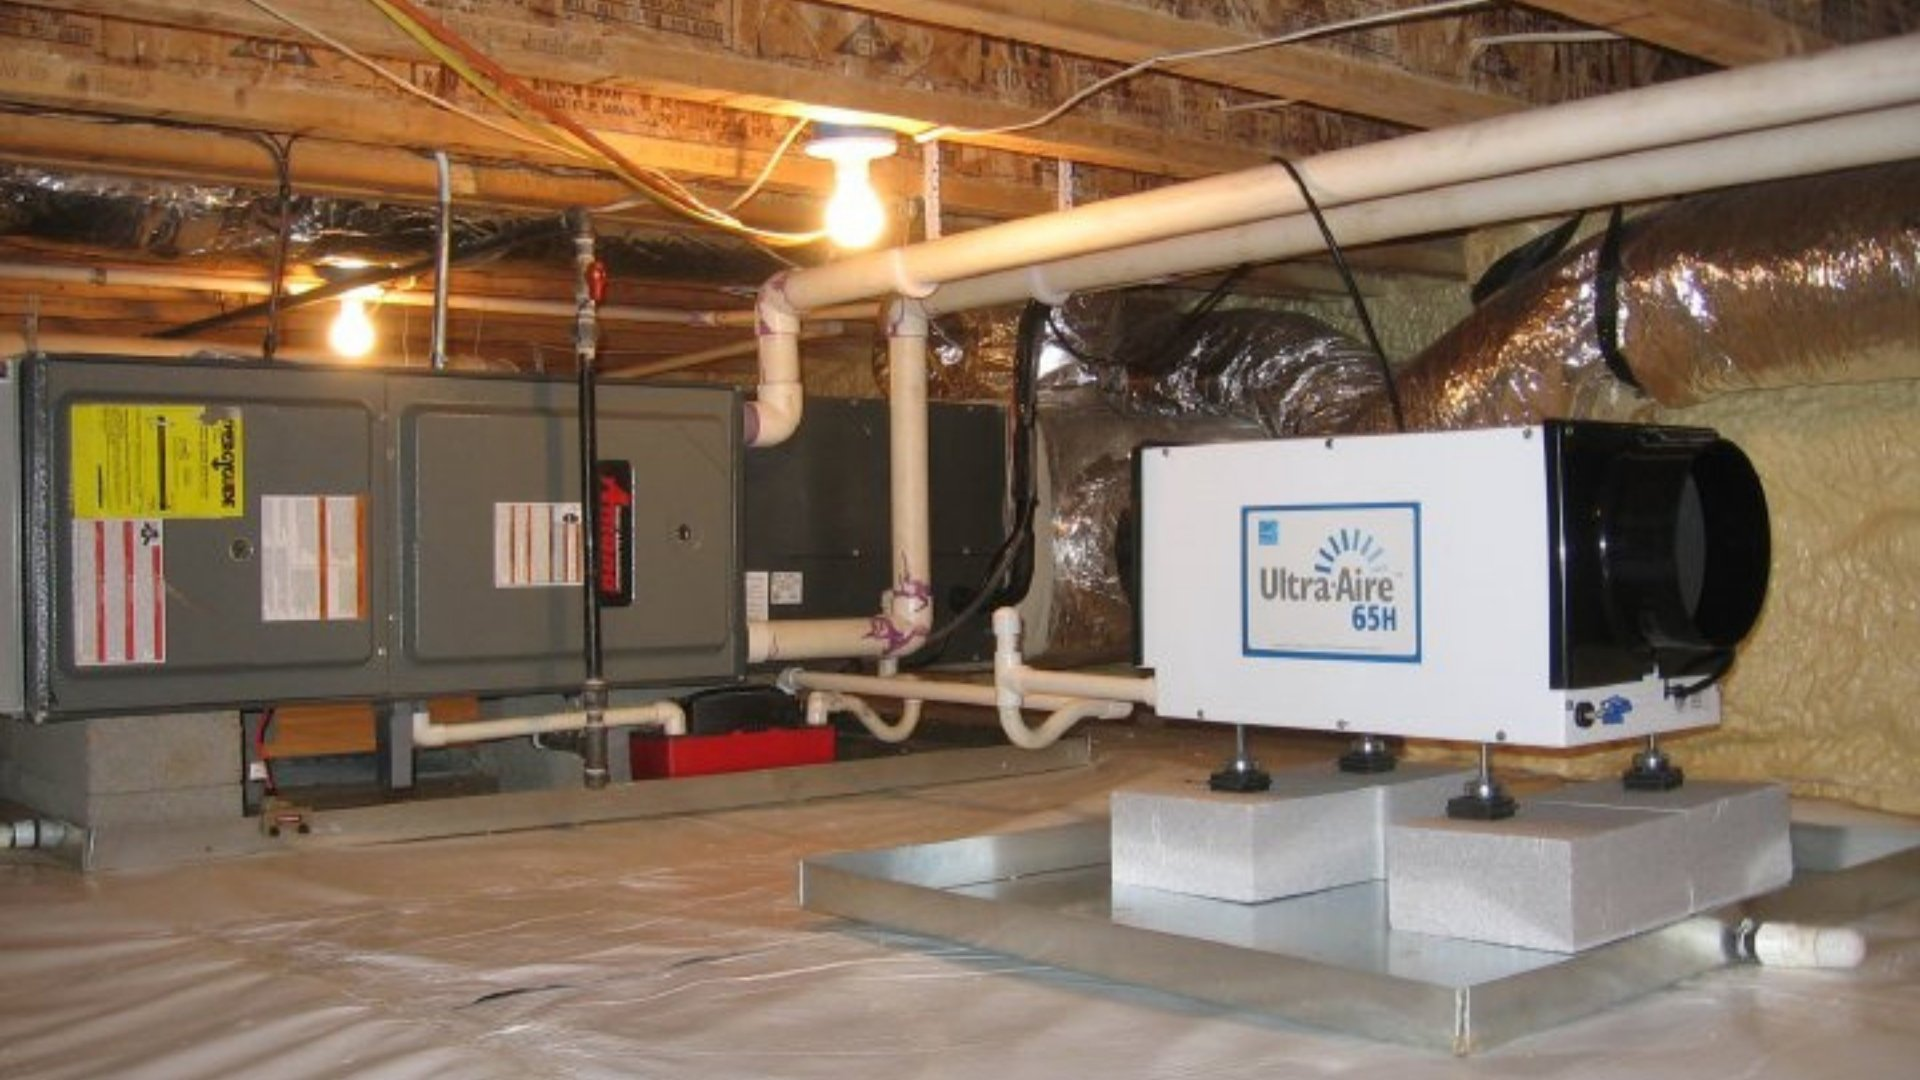 Dehumidifier in Crawlspace - Page Gallery